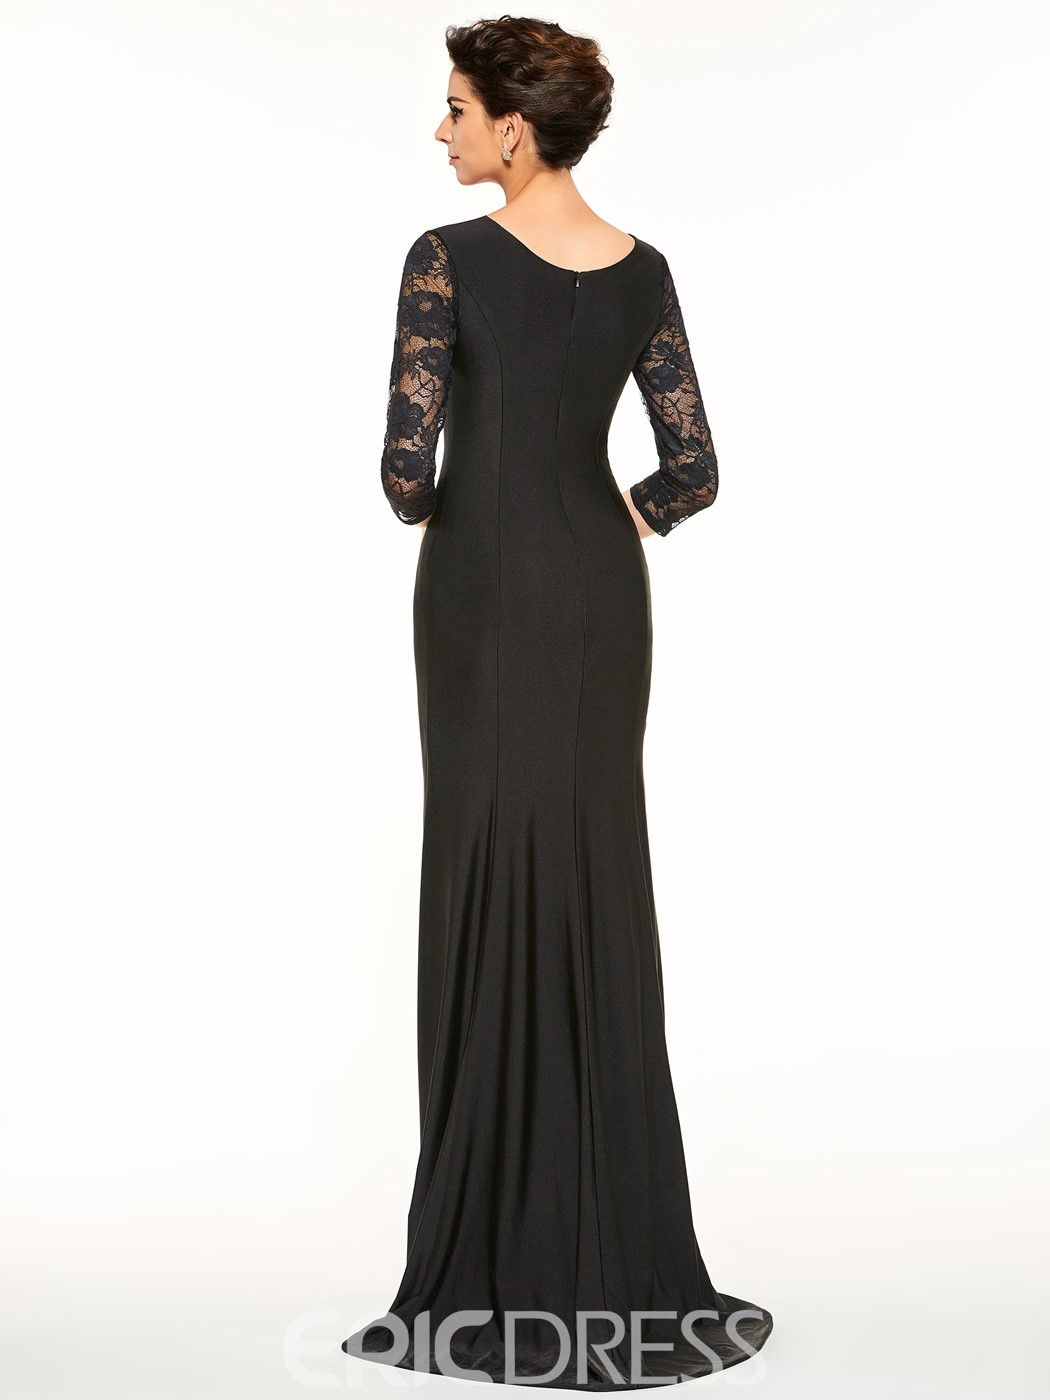 f6608c1dfa0 Ericdress Half Sleeves Lace Sheath Mother Of The Bride Dress ...